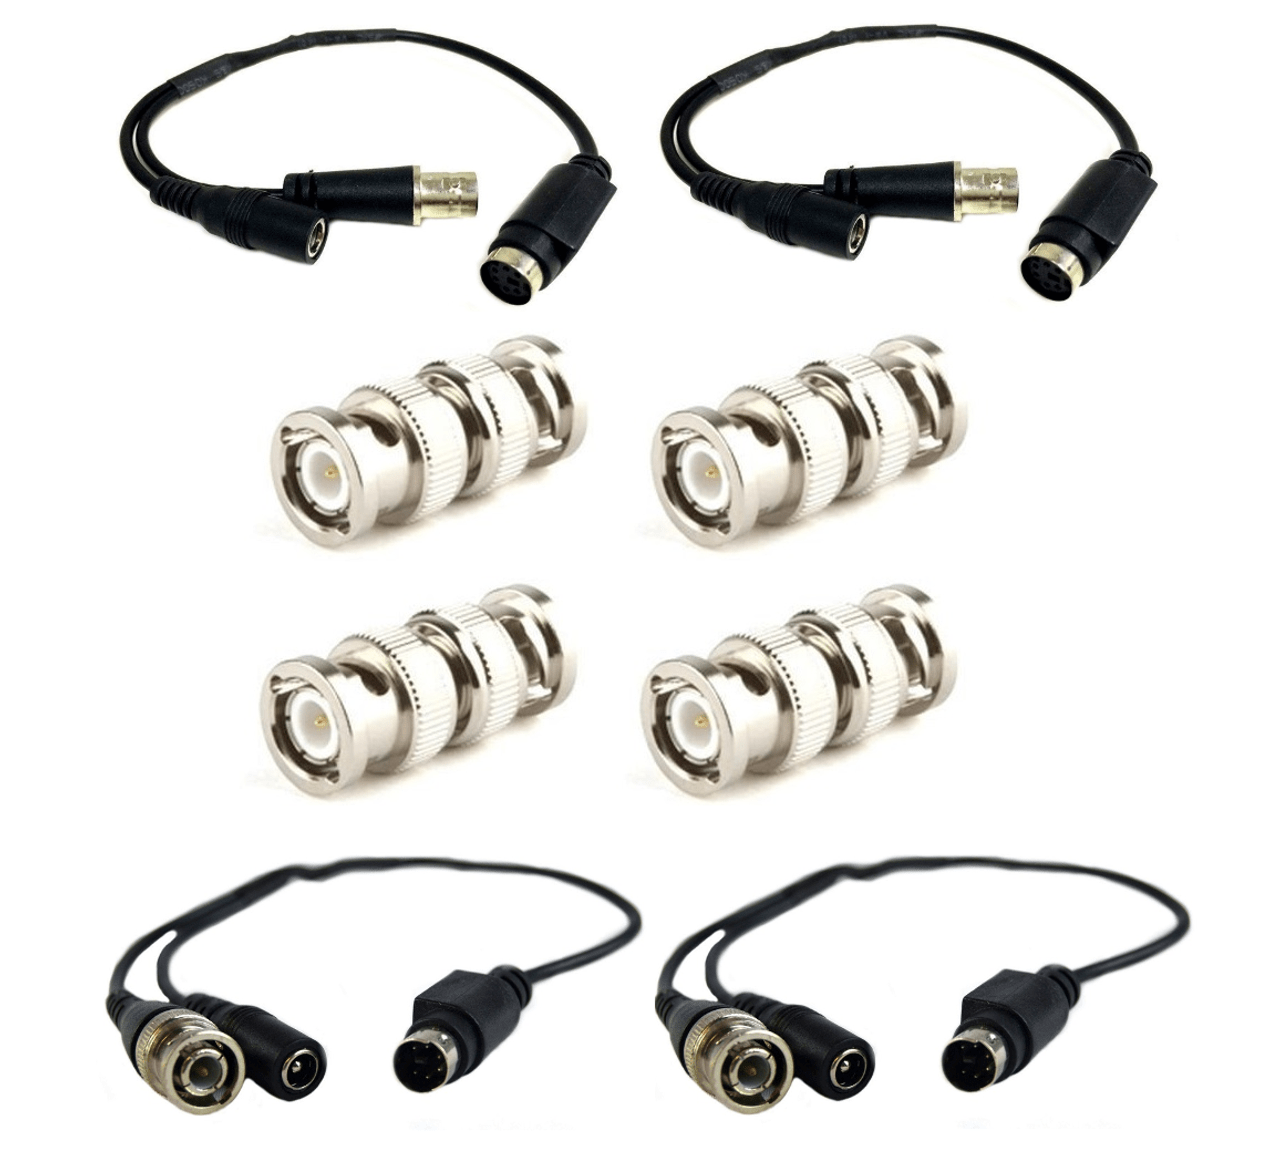 2 pair male female lorex cable 4 pin din connector w 4 bnc [ 1156 x 1058 Pixel ]